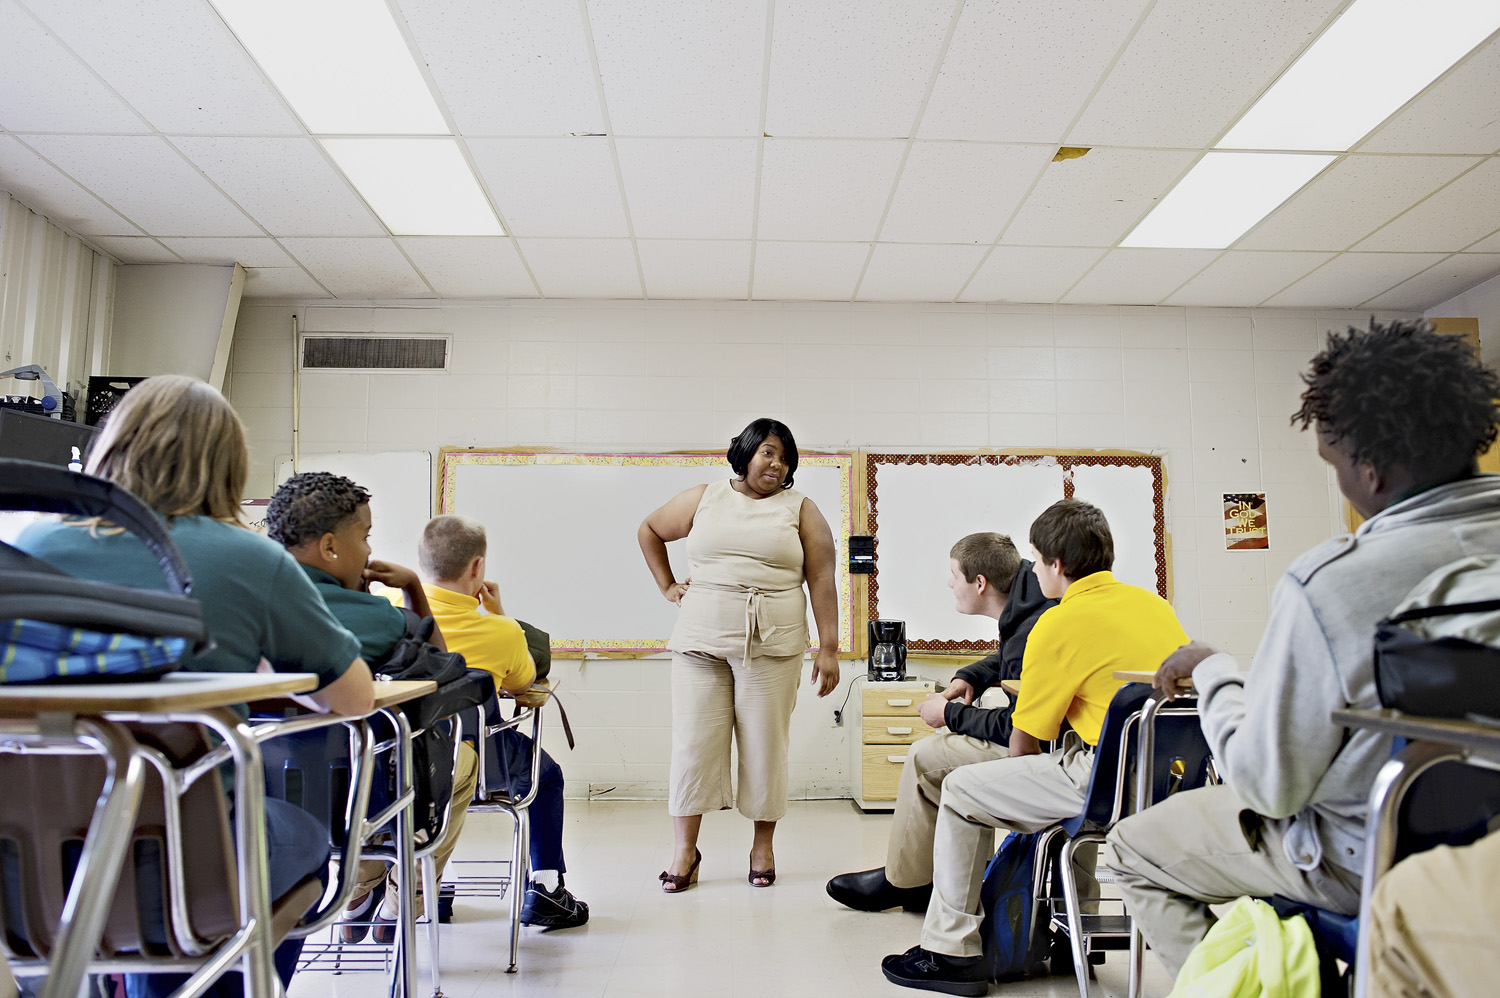 Katrina Wiley talks to a class on the first day of school at H.W. Byers High School